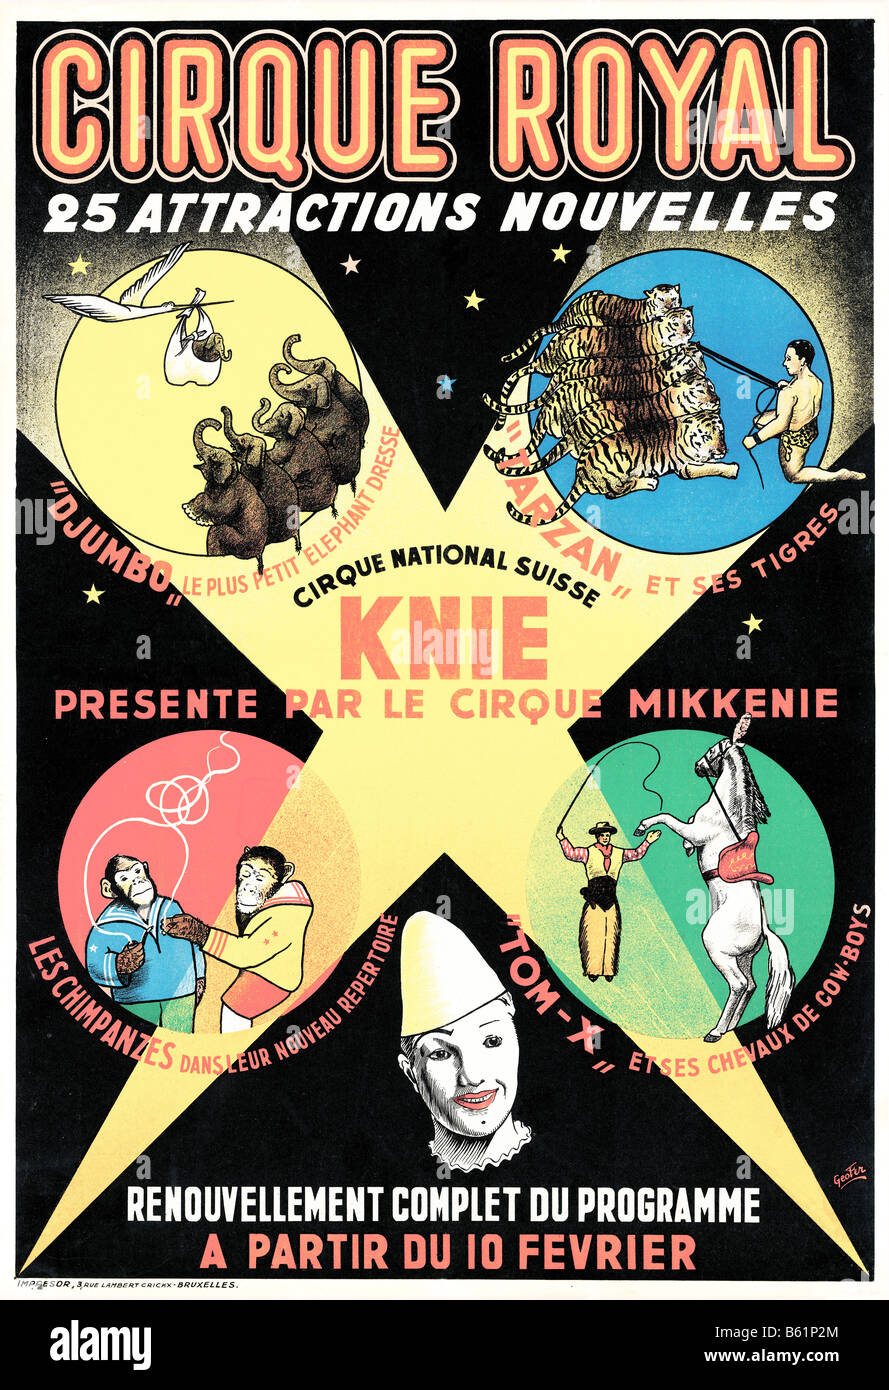 Cirque Royal 1950s poster for the travelling Belgian circus with 25 new acts - Stock Image